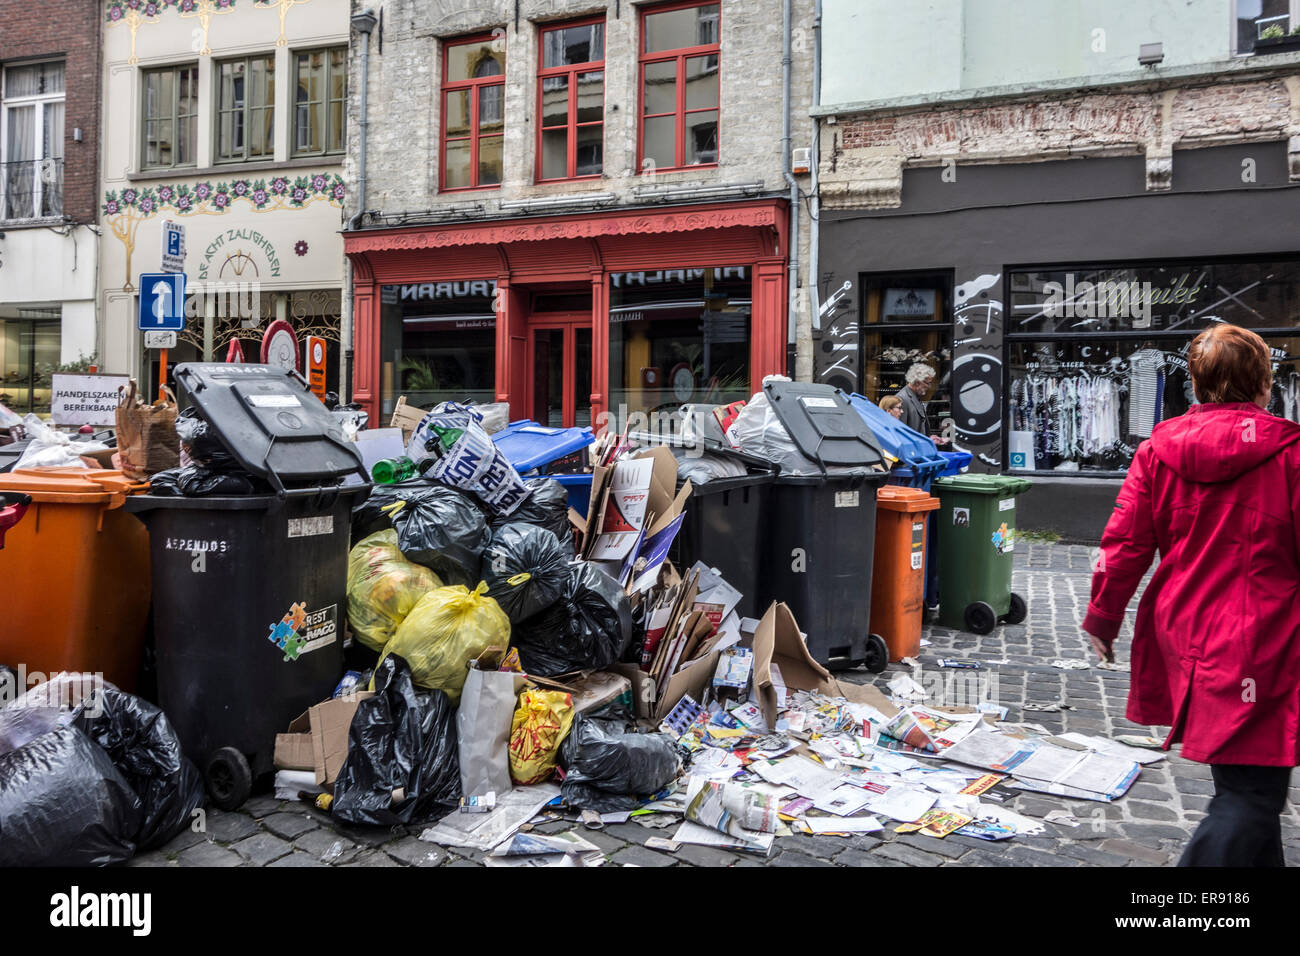 Rubbish bags and garbage containers with piled up household refuse due to strike of binmen in the city Ghent, Belgium - Stock Image